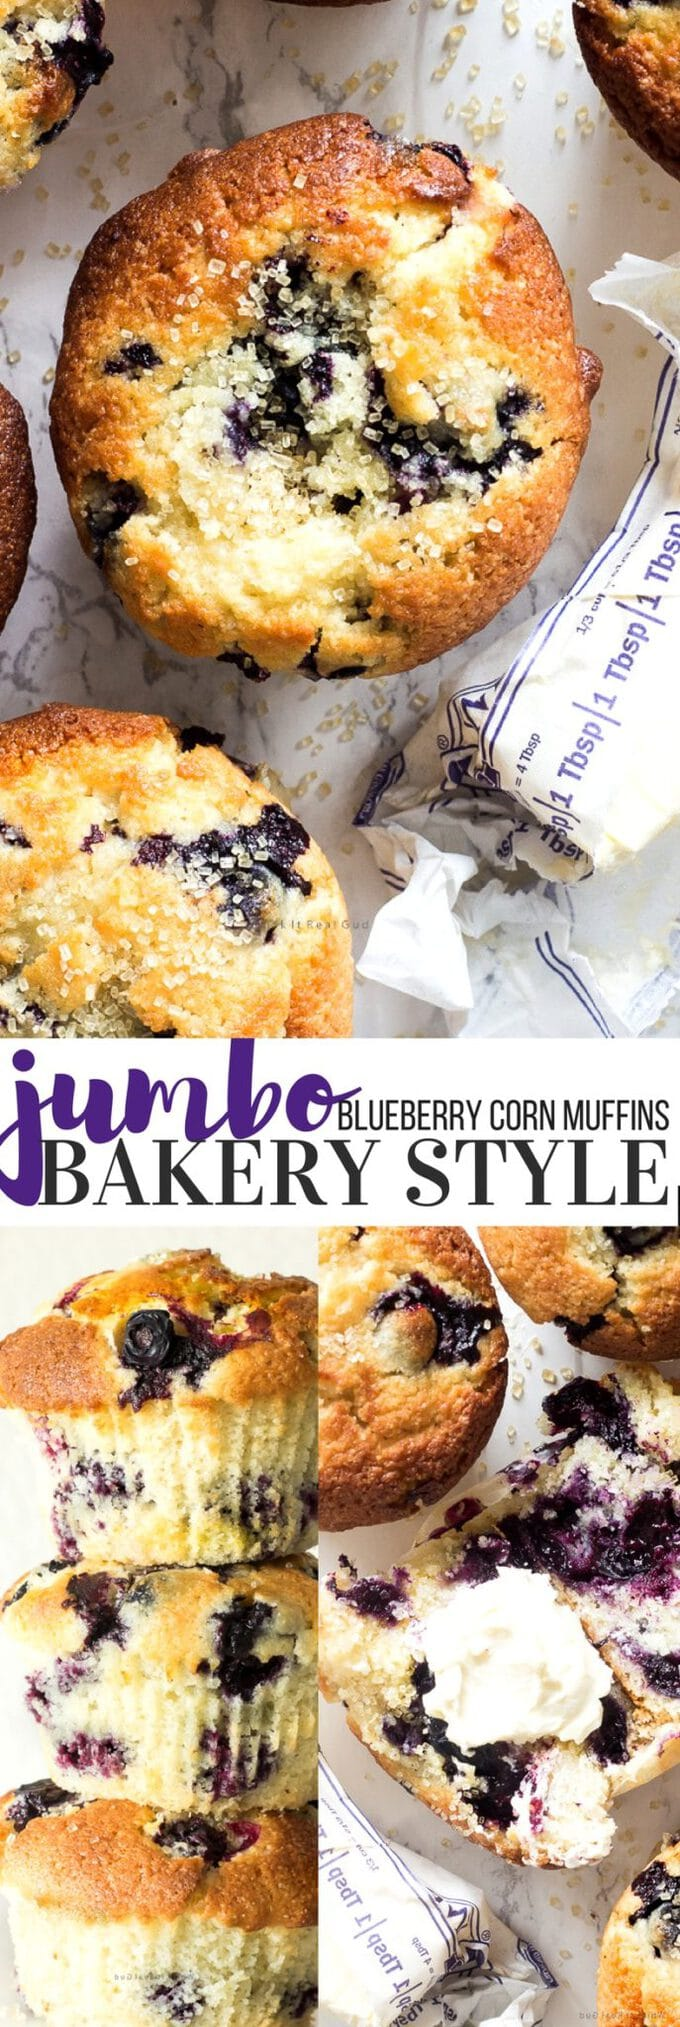 Whenever I make these jumbo bakery style blueberry corn muffins, my family and guests always ask for the recipe. These muffins are are not wimpy muffins. They are jumbo sized, full of blueberries with a slight crusty golden top and soft. These are quick to prepare and an easy treat that can be whipped up for a morning sweet or anytime of the day.